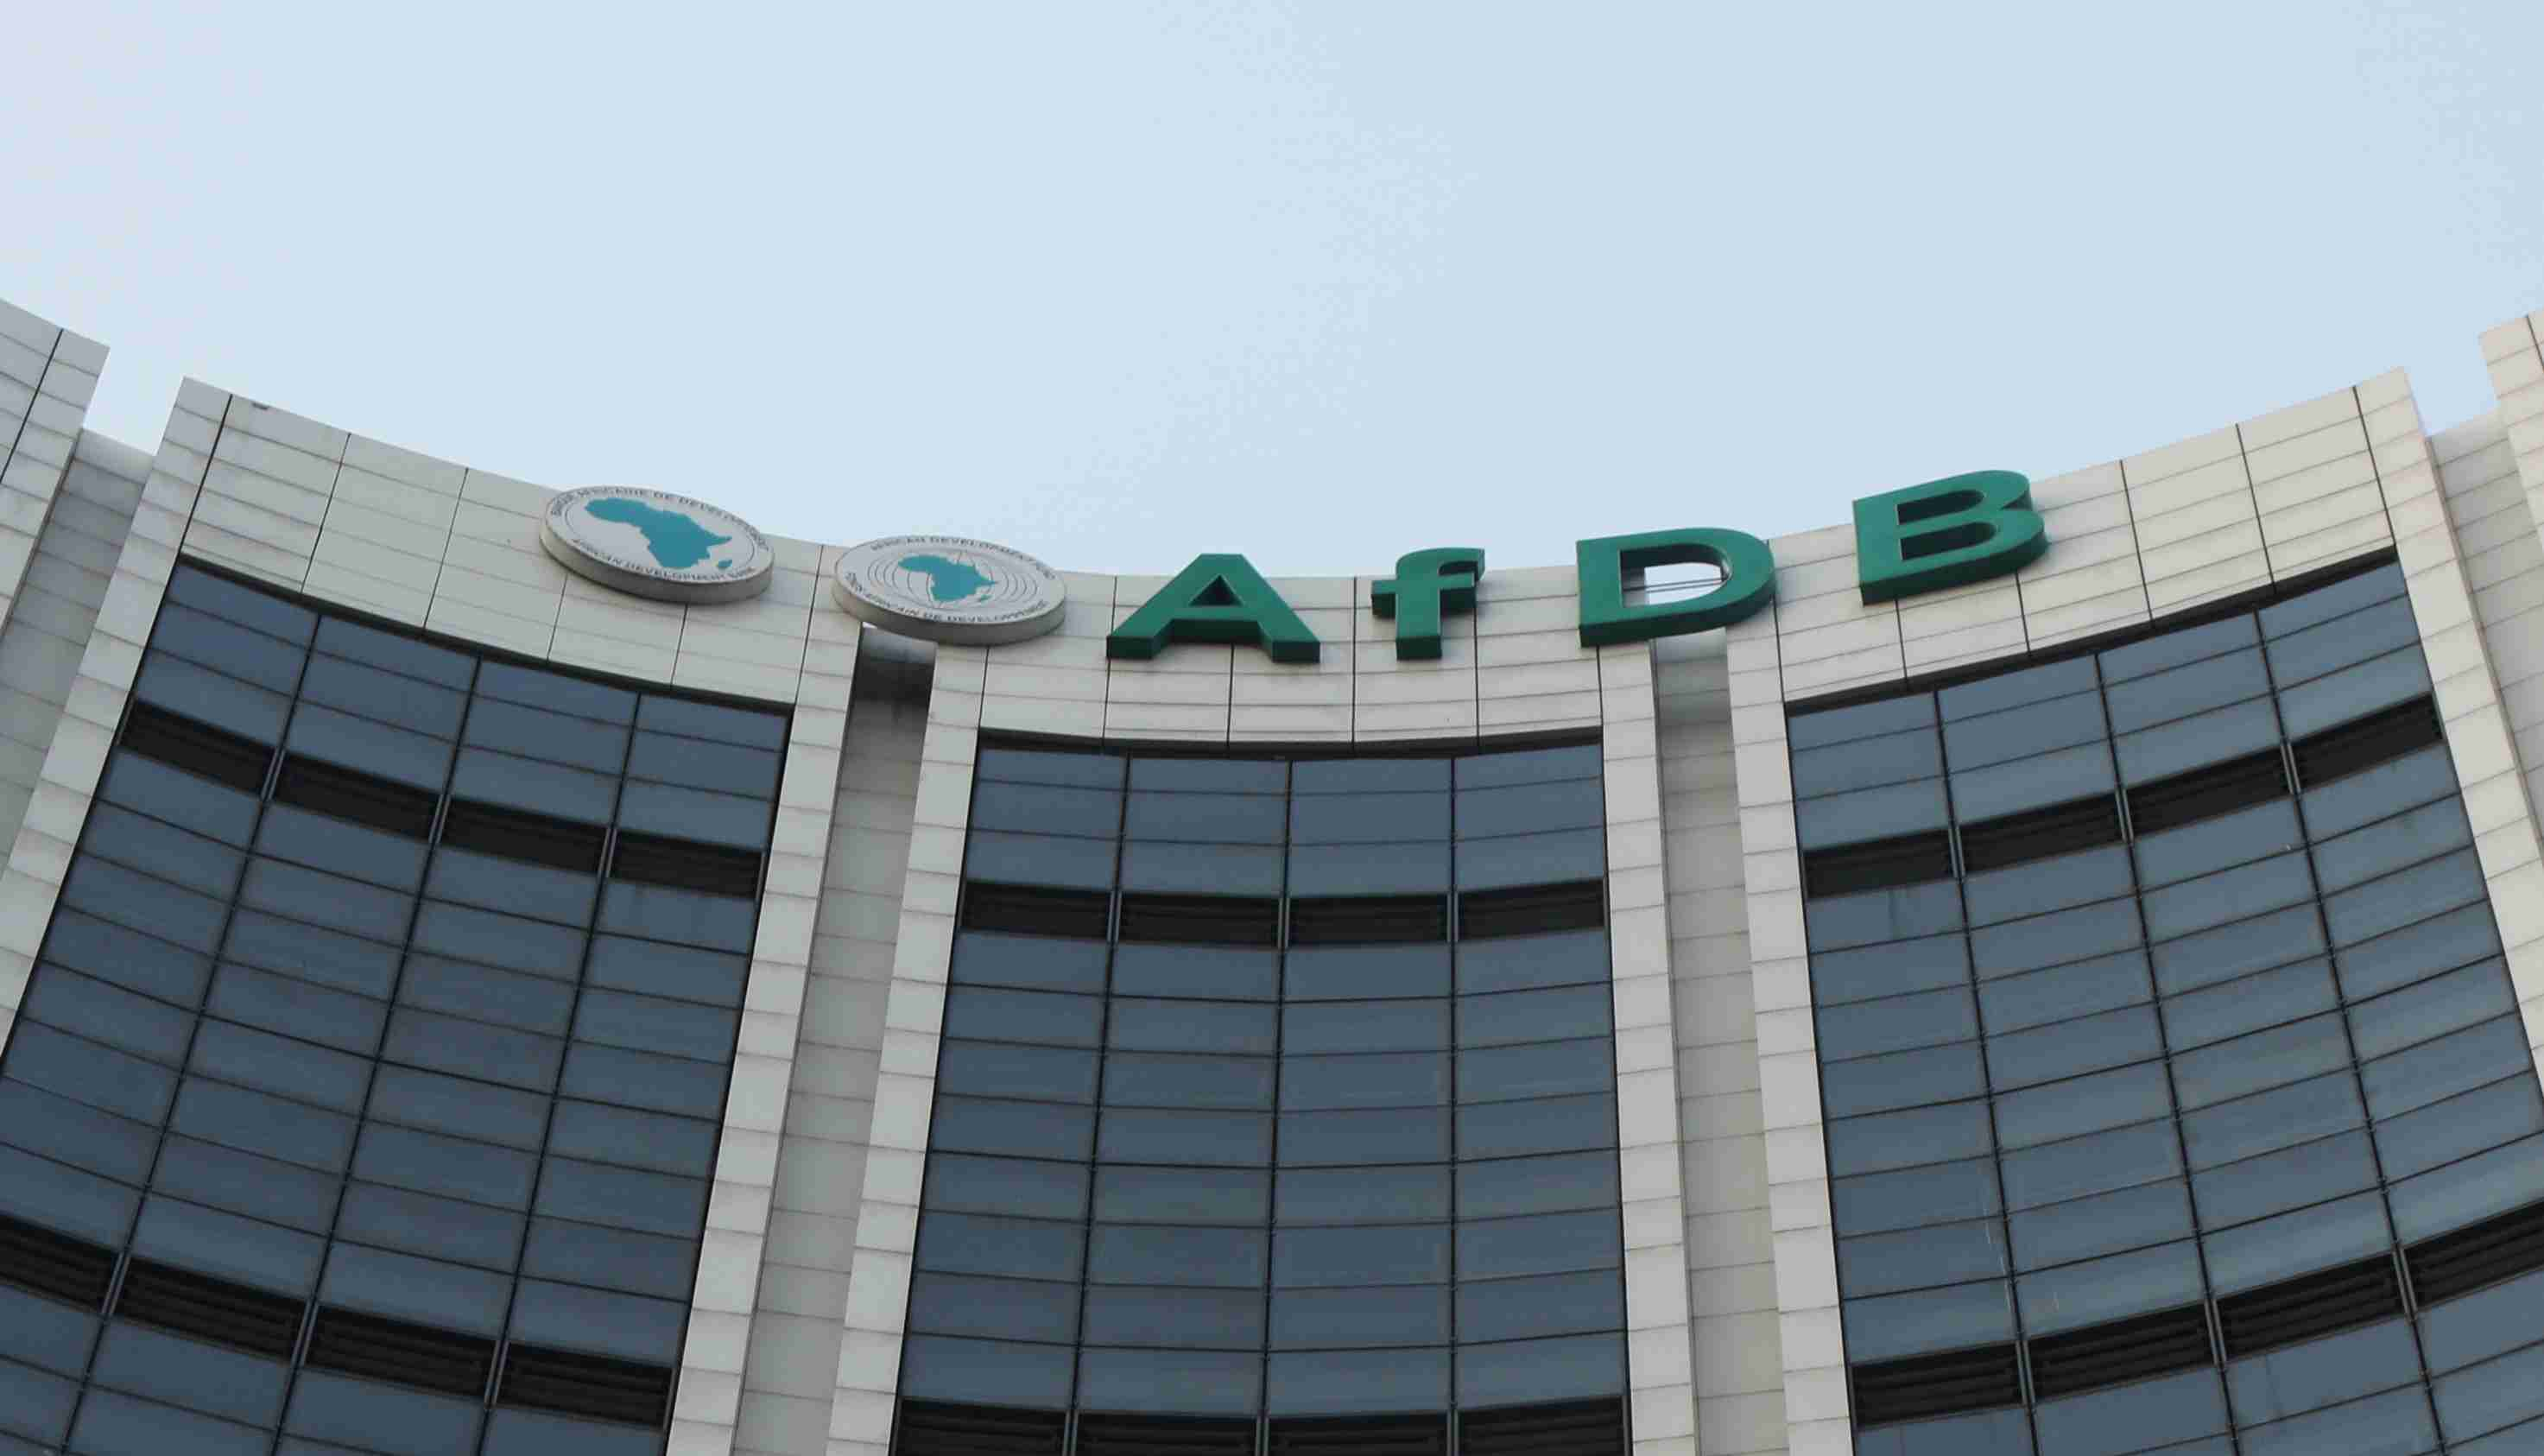 The headquarters of the African Development Bank (AfDB) are pictured in Abidjan, Ivory Coast, January 30, 2020.REUTERS/Luc Gnago